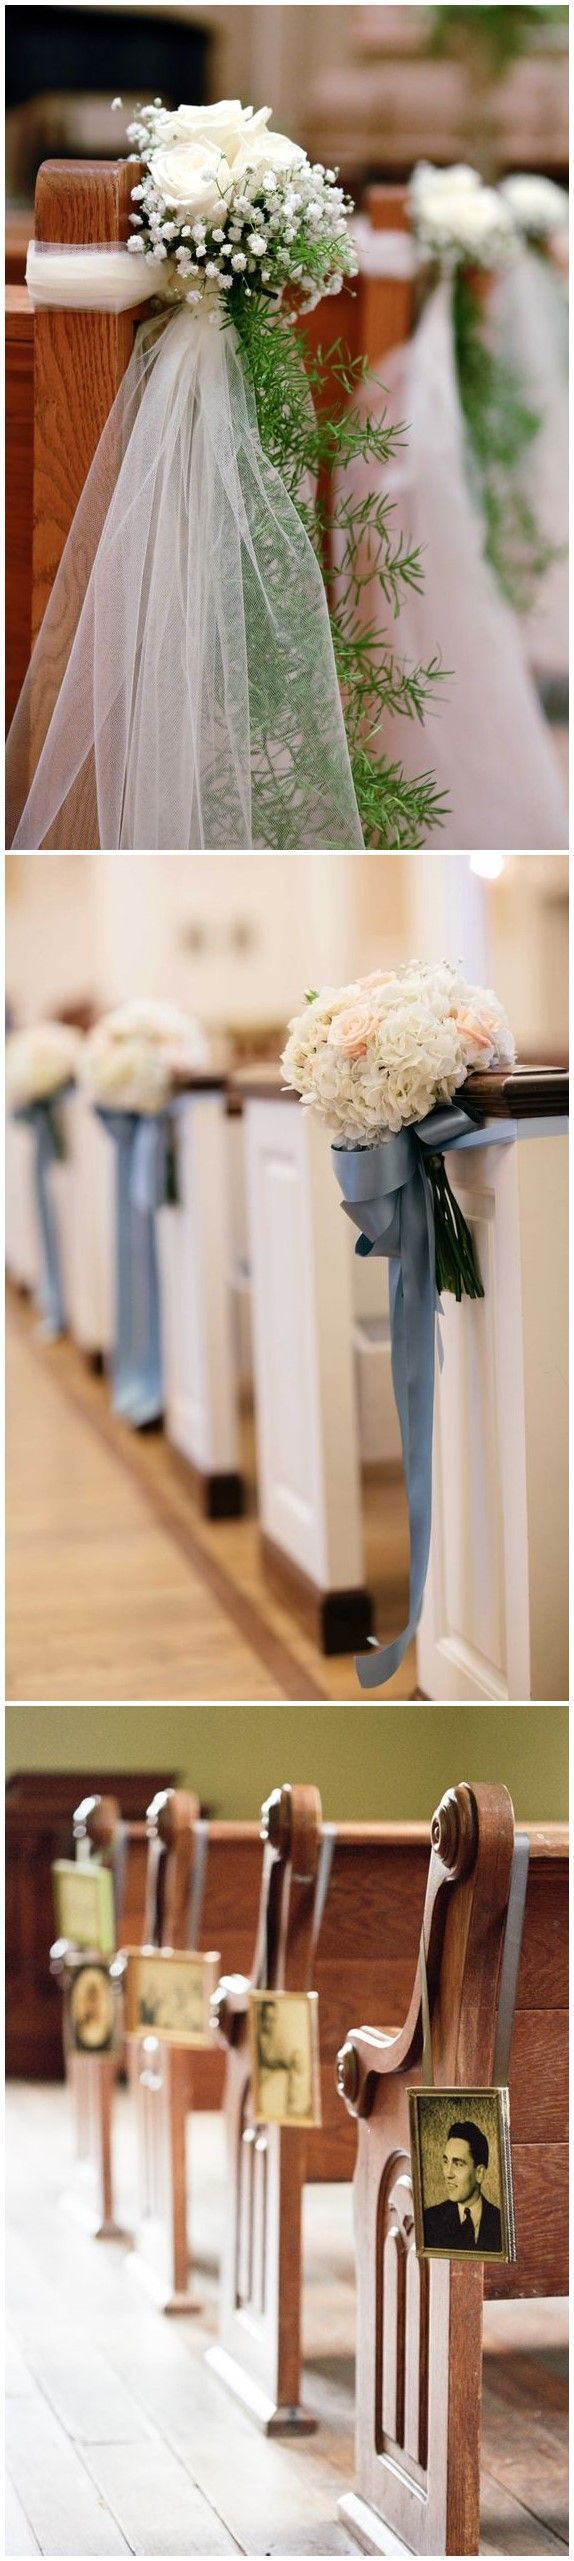 Best 25 church weddings ideas on pinterest church wedding wedding decorations 21 stunning church wedding aisle decoration ideas to steal see junglespirit Images